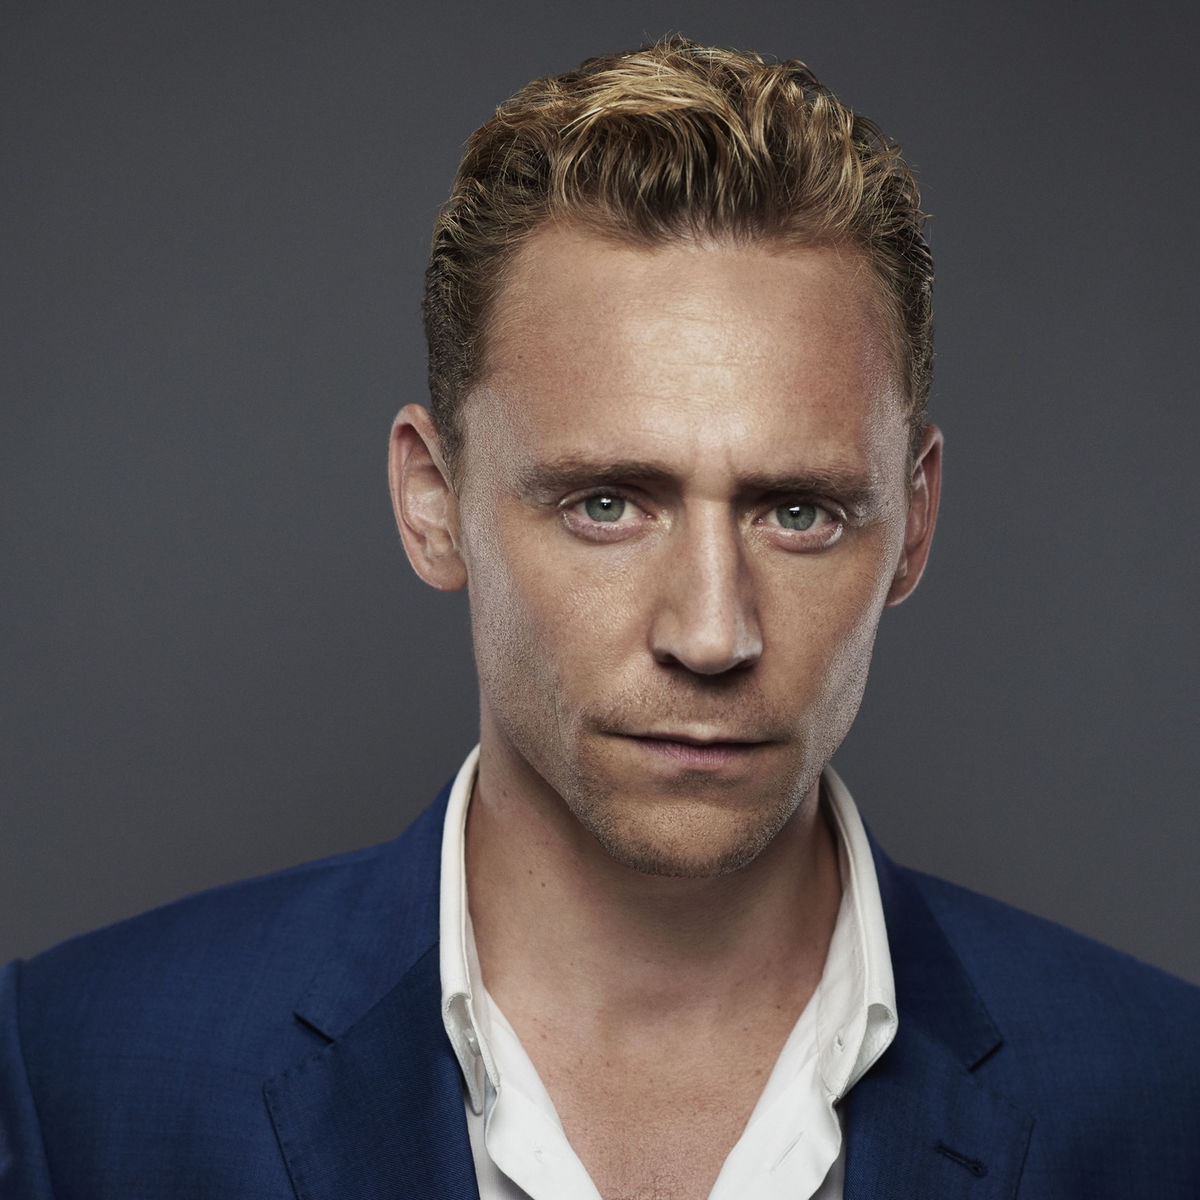 Tom-Hiddleston-The-Night-Manager.jpg